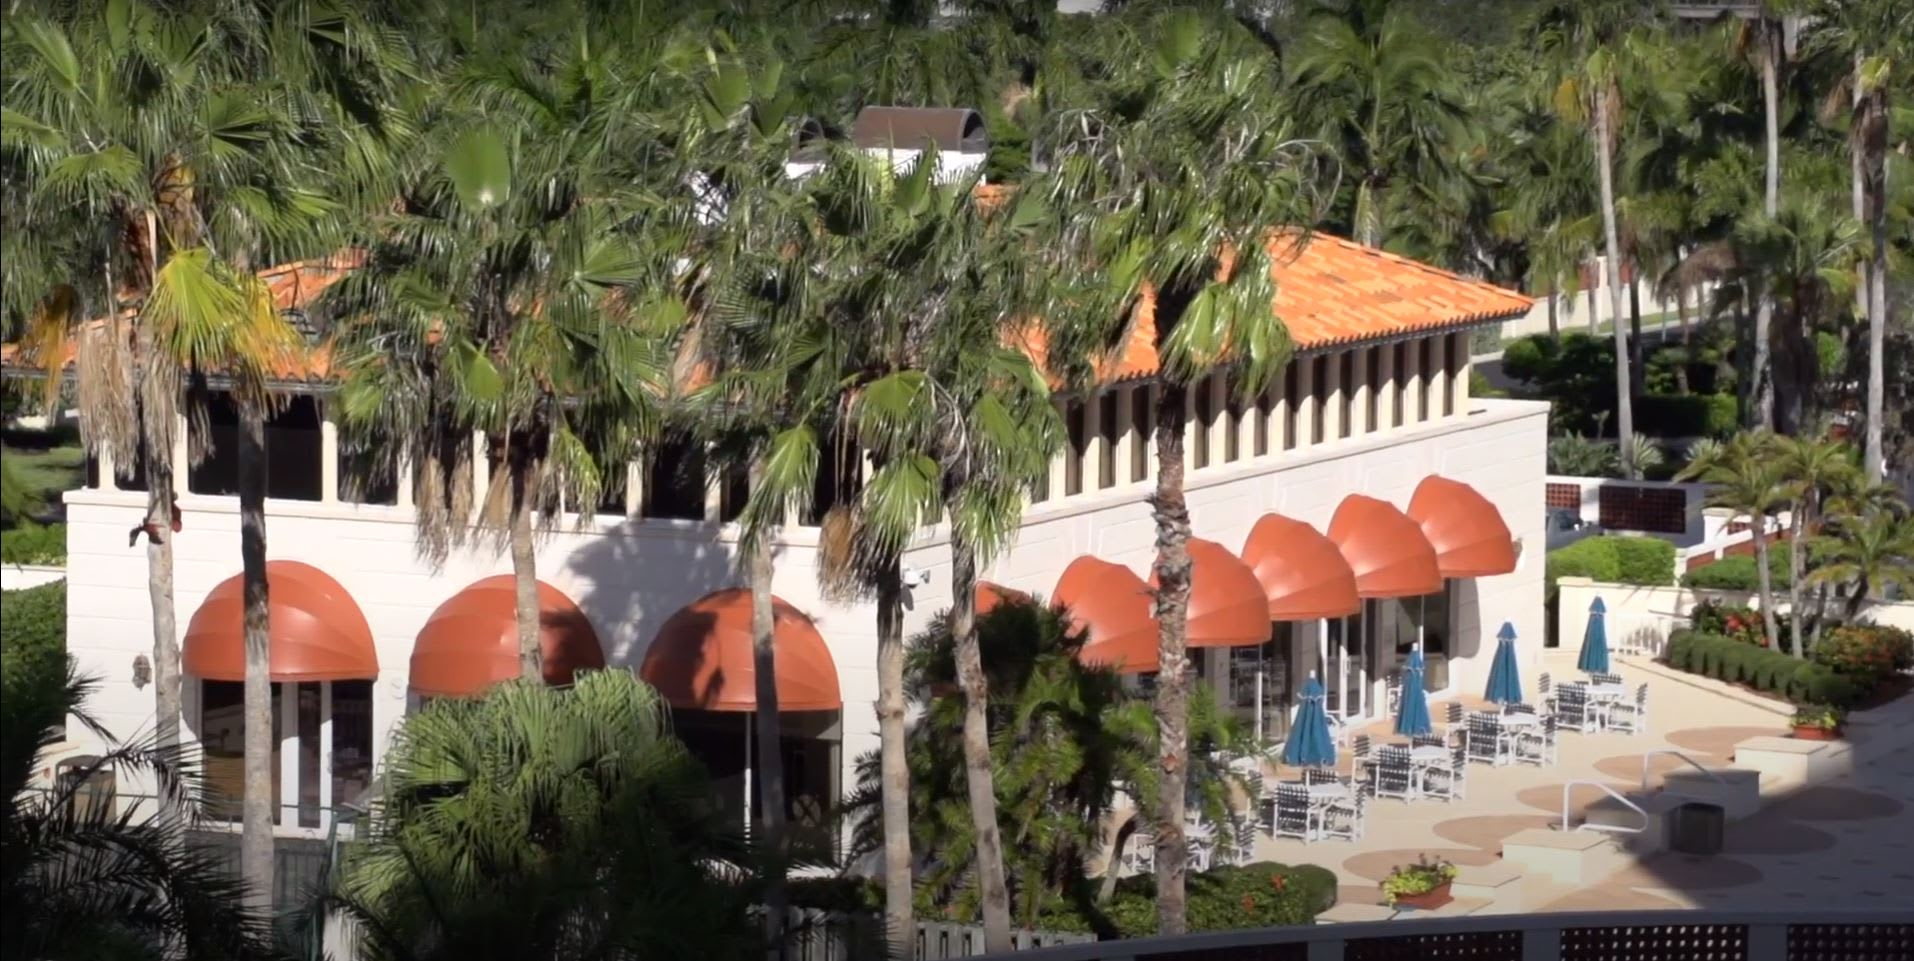 3040 Grand Bay #235, Longboat Key, Florida 34228. For Sale By Roger Pettingell video preview